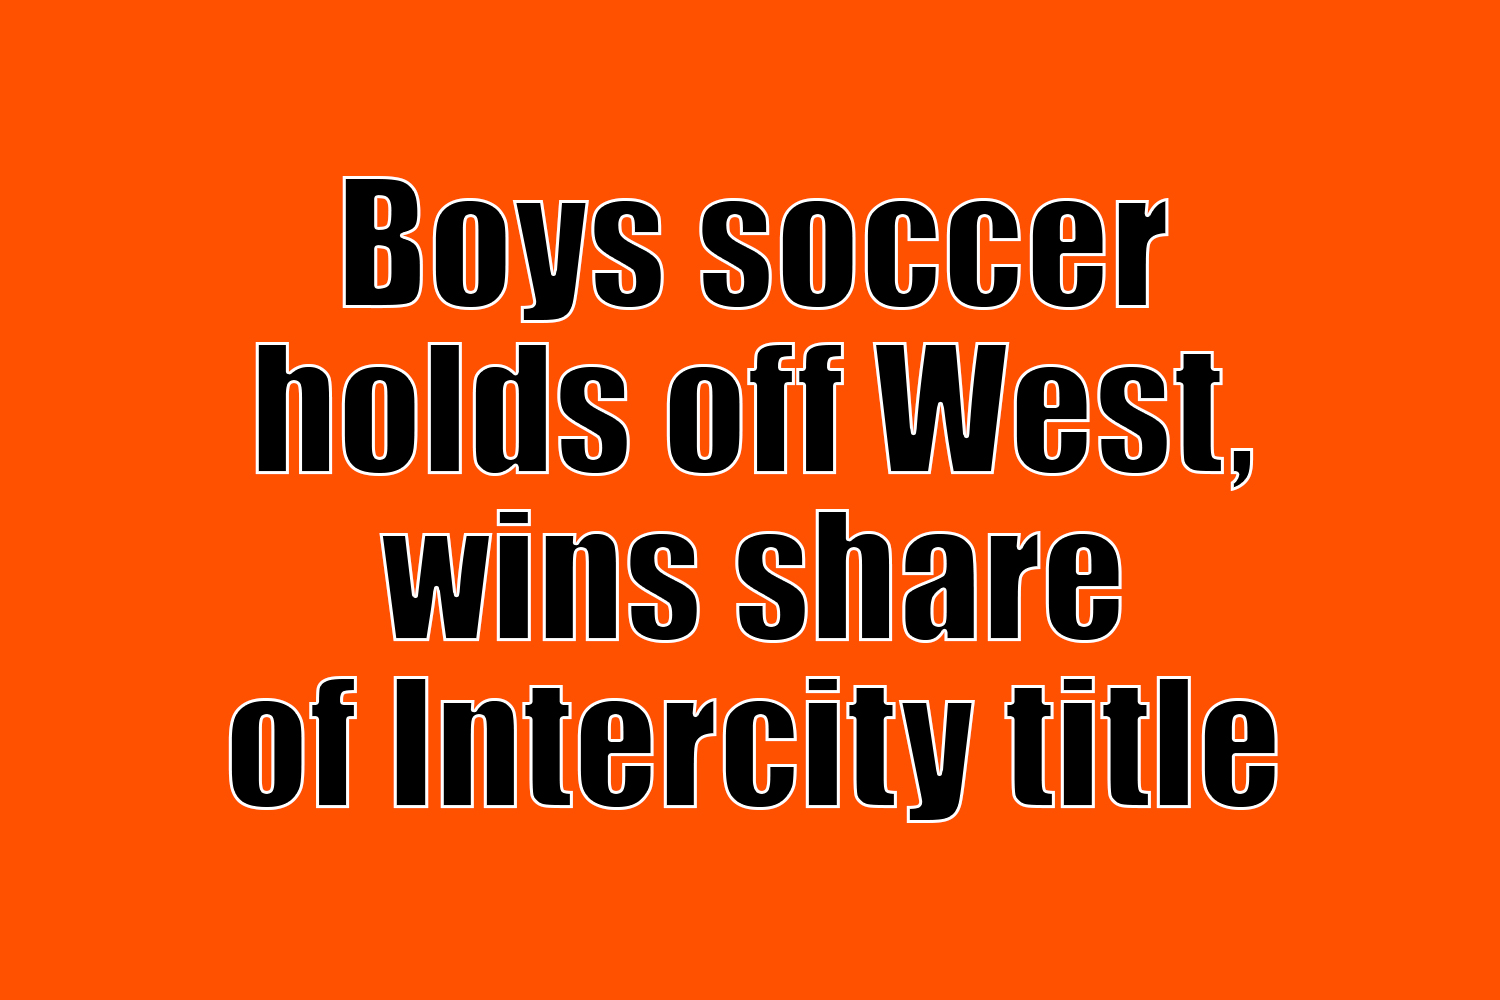 Boys soccer holds off West, wins share of  Intercity title